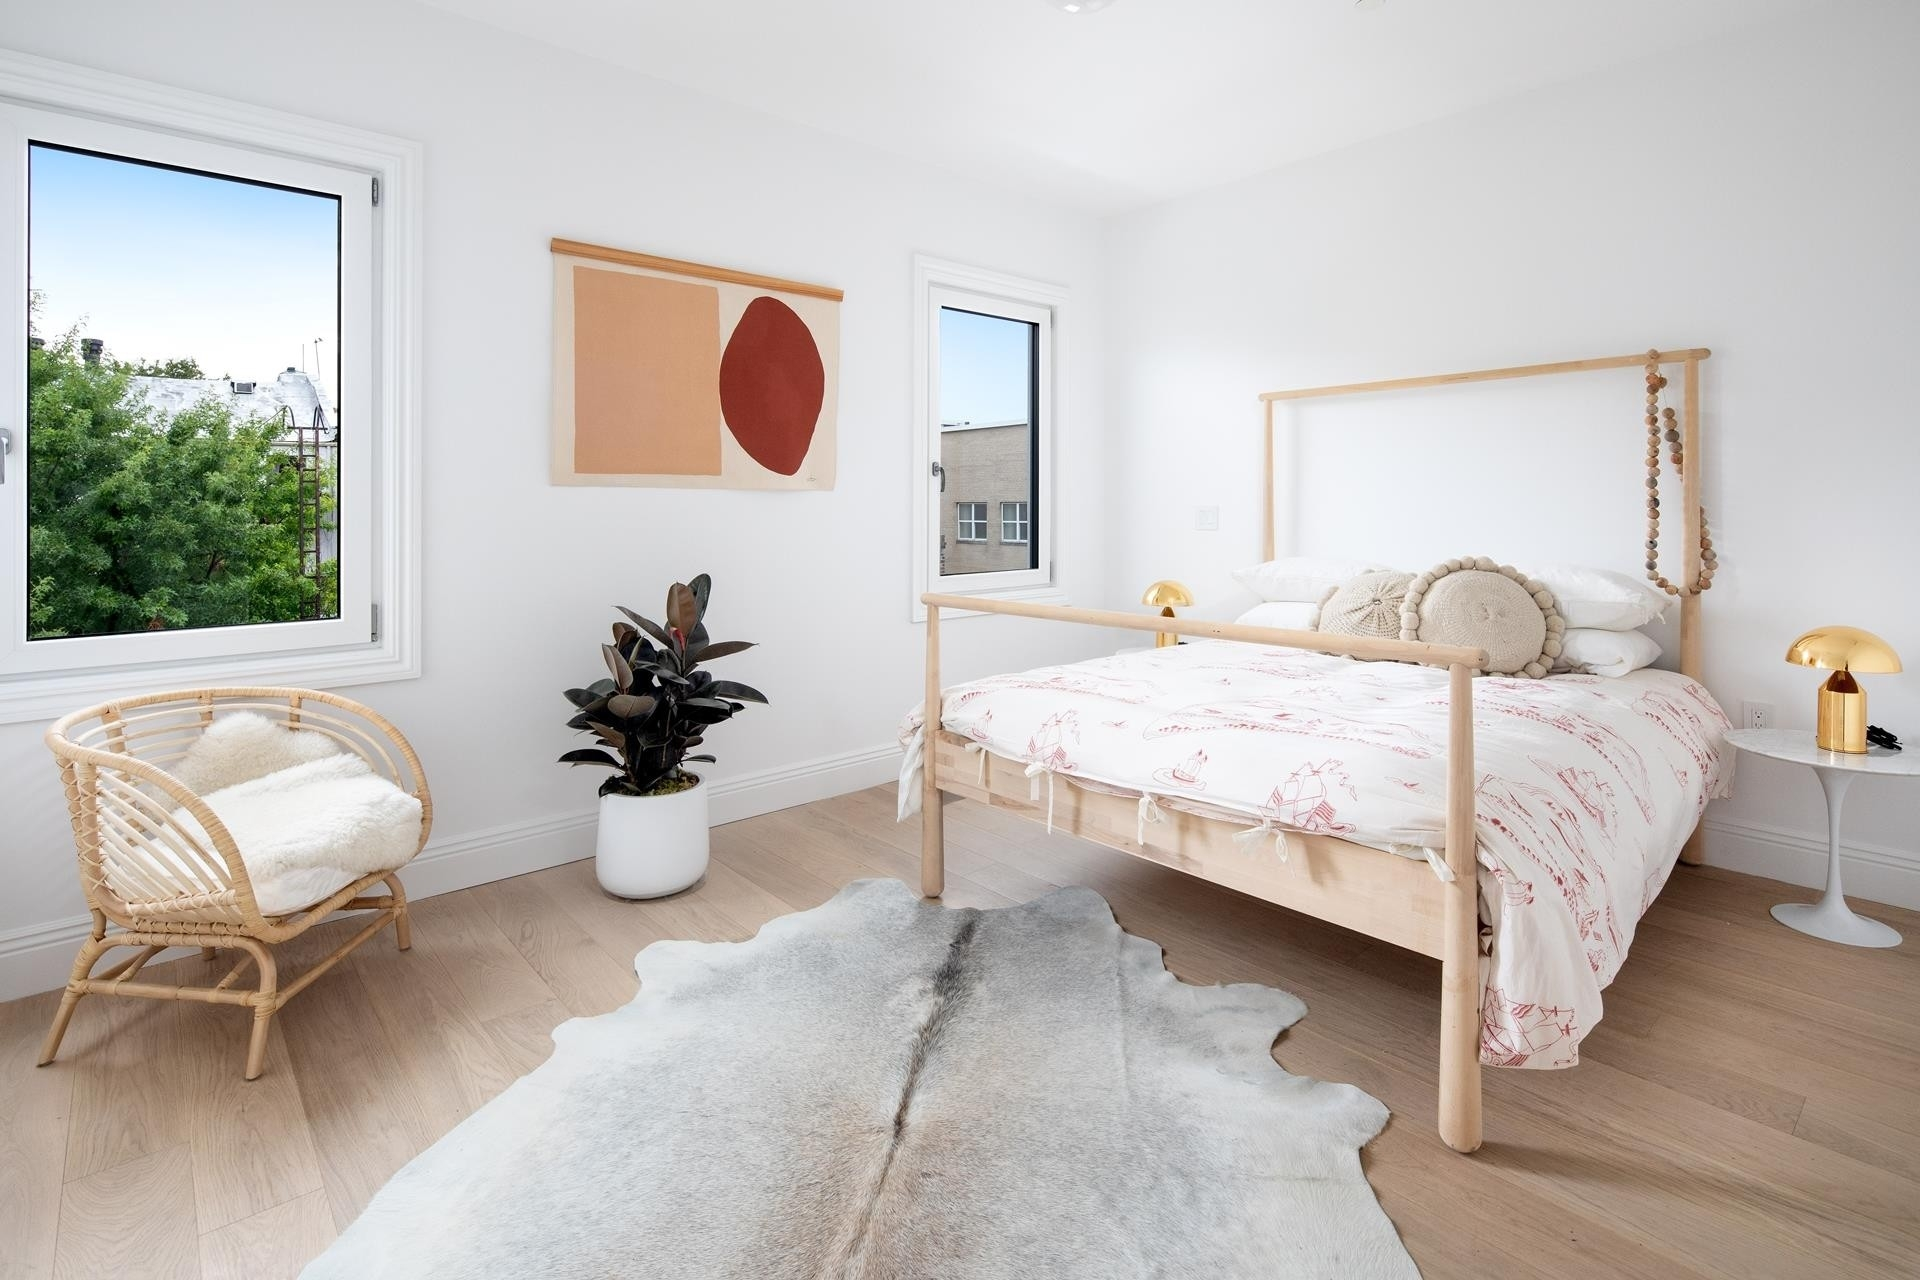 11. Single Family Townhouse for Sale at 330 SACKETT ST , TOWNHOUSE Carroll Gardens, Brooklyn, NY 11231